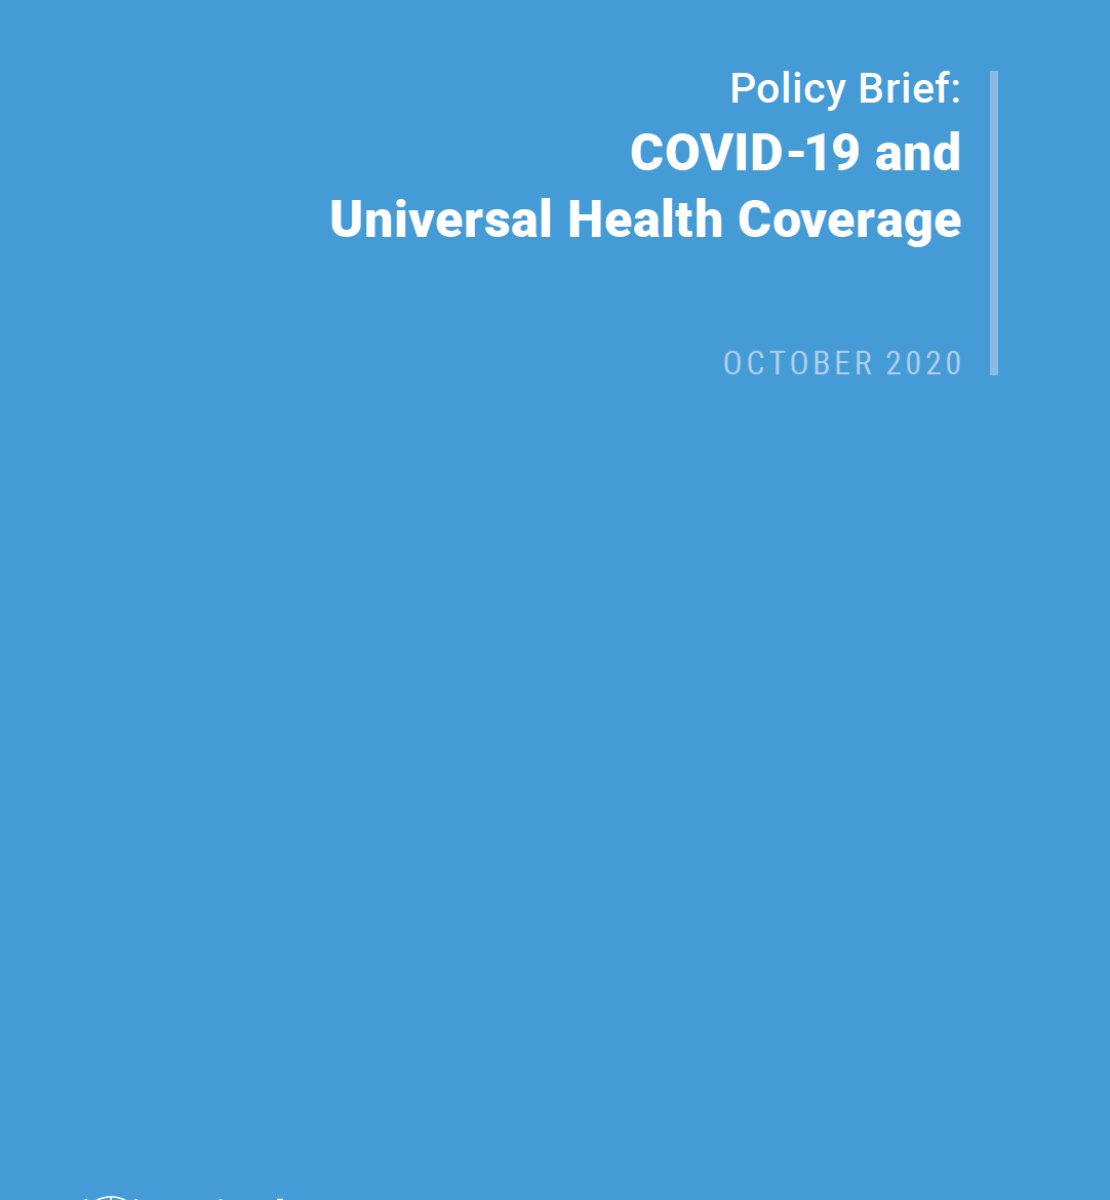 """Cover shows the title """"Policy Brief: COVID-19 and Universal Health Coverage"""" against a solid blue background with the UN emblem on the lower left side."""